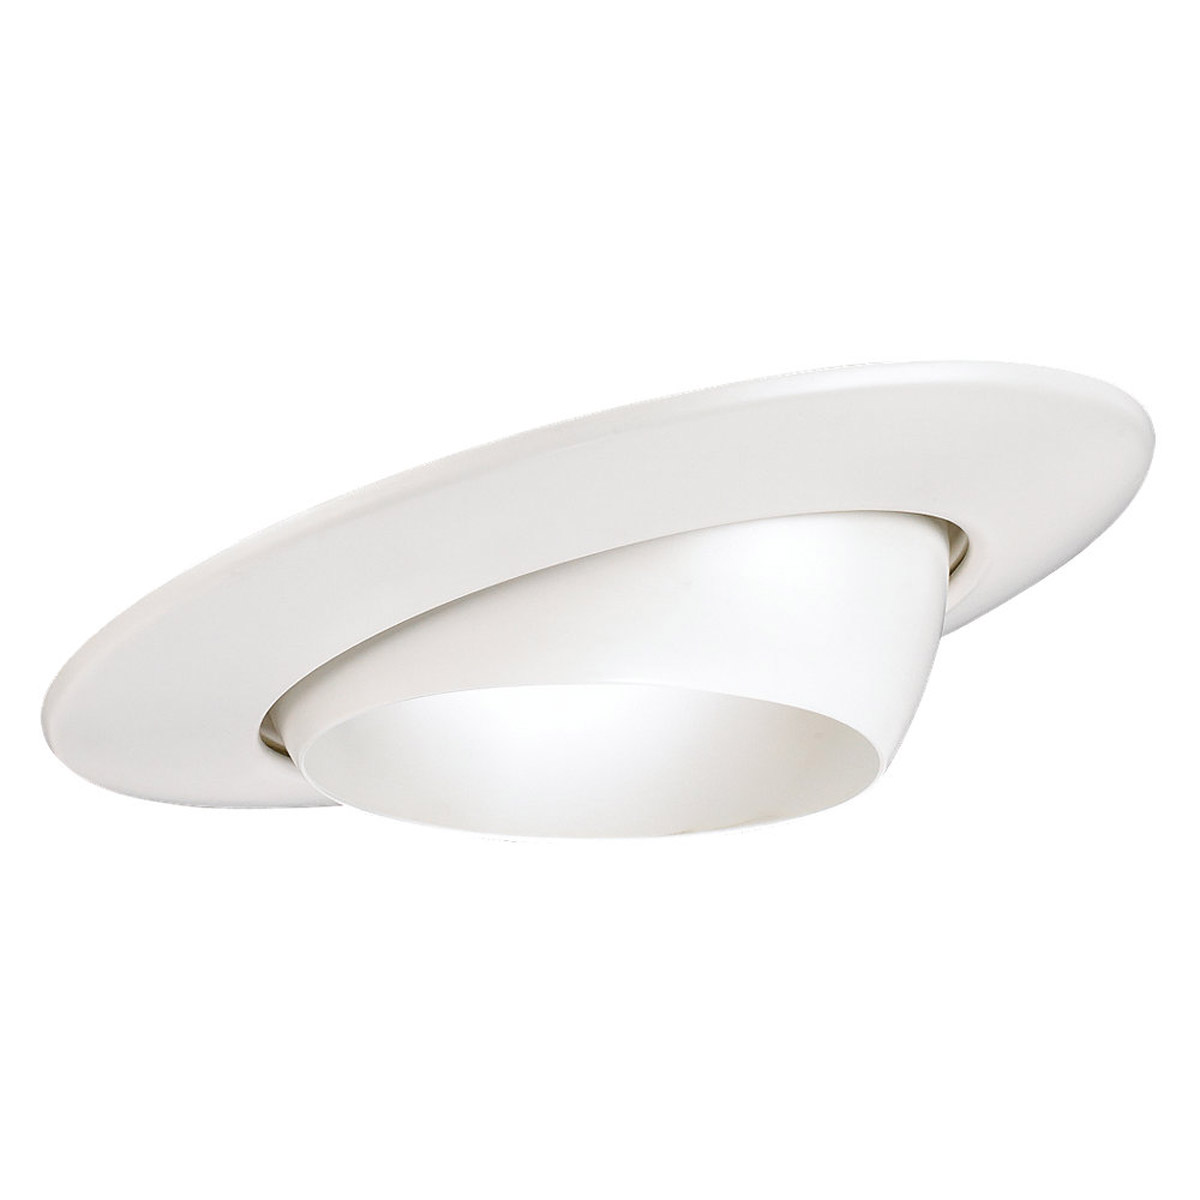 Sea Gull Lighting Signature Recessed Trim Only in White 11136AT-15 photo